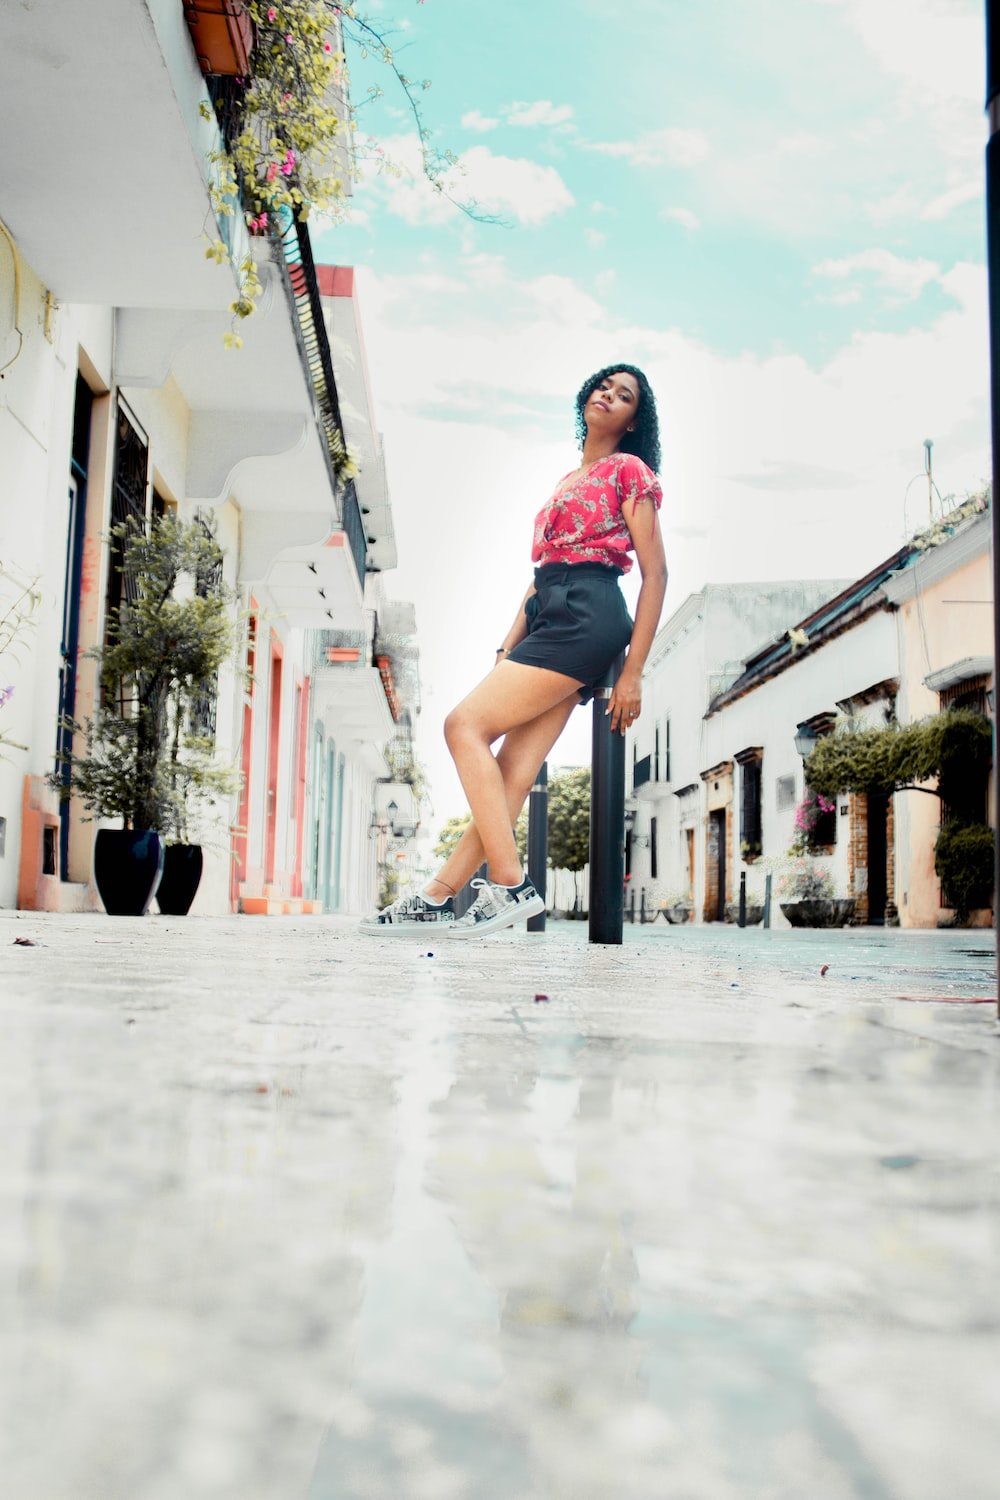 woman in pink shirt and black shorts standing on sidewalk during daytime